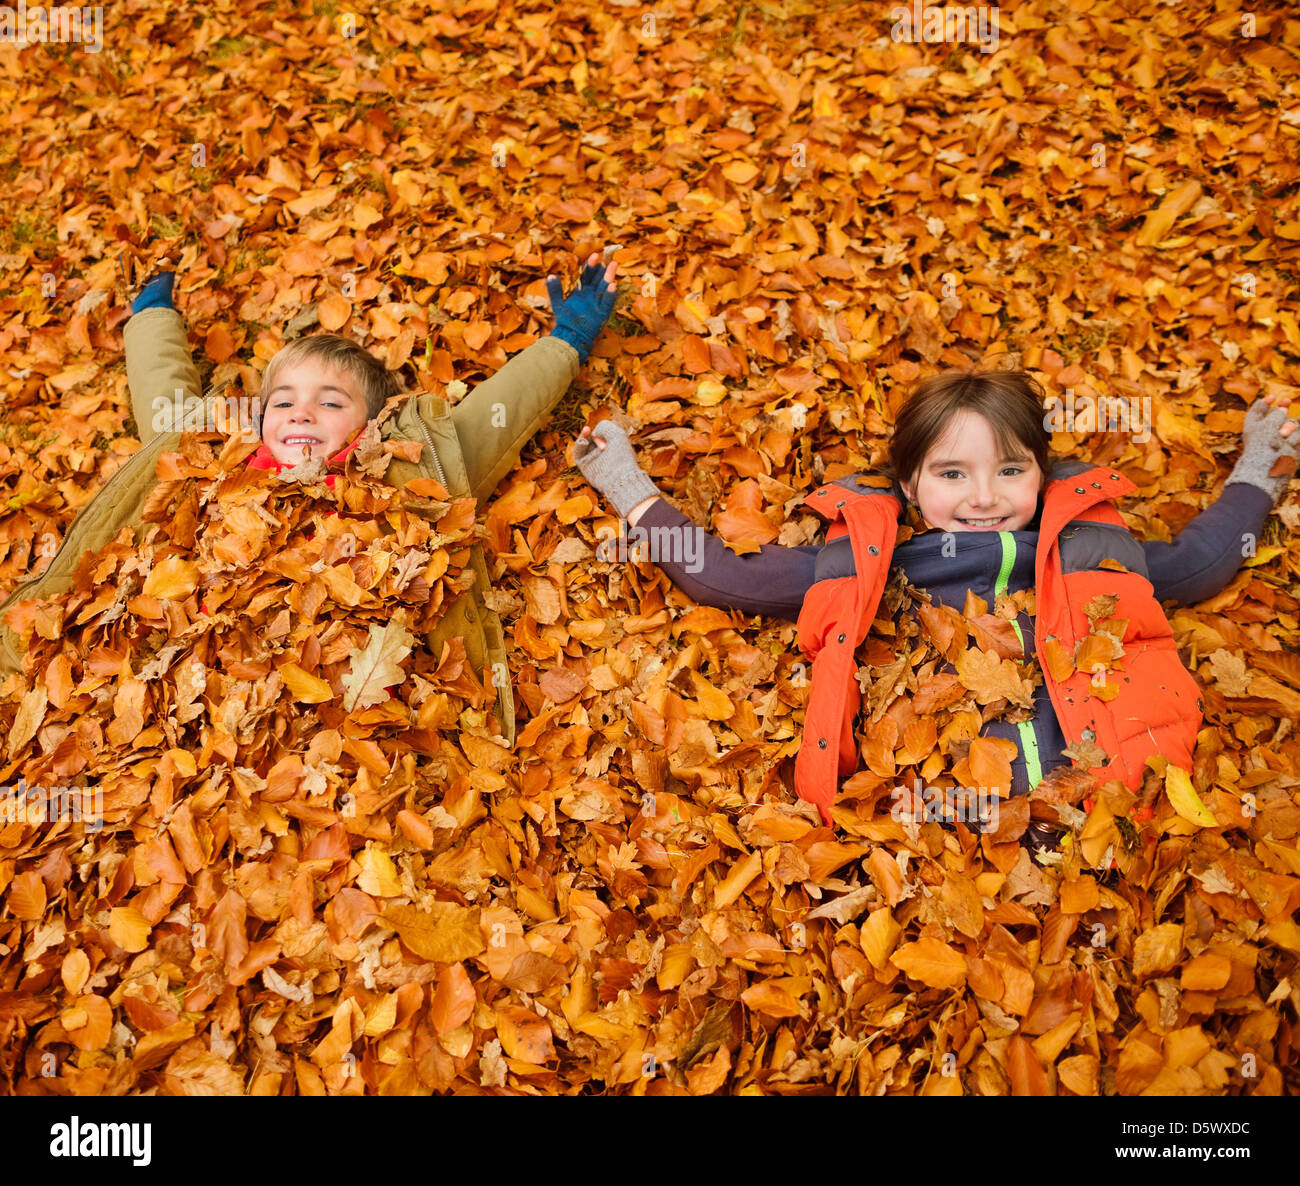 Children laying in autumn leaves Stock Photo